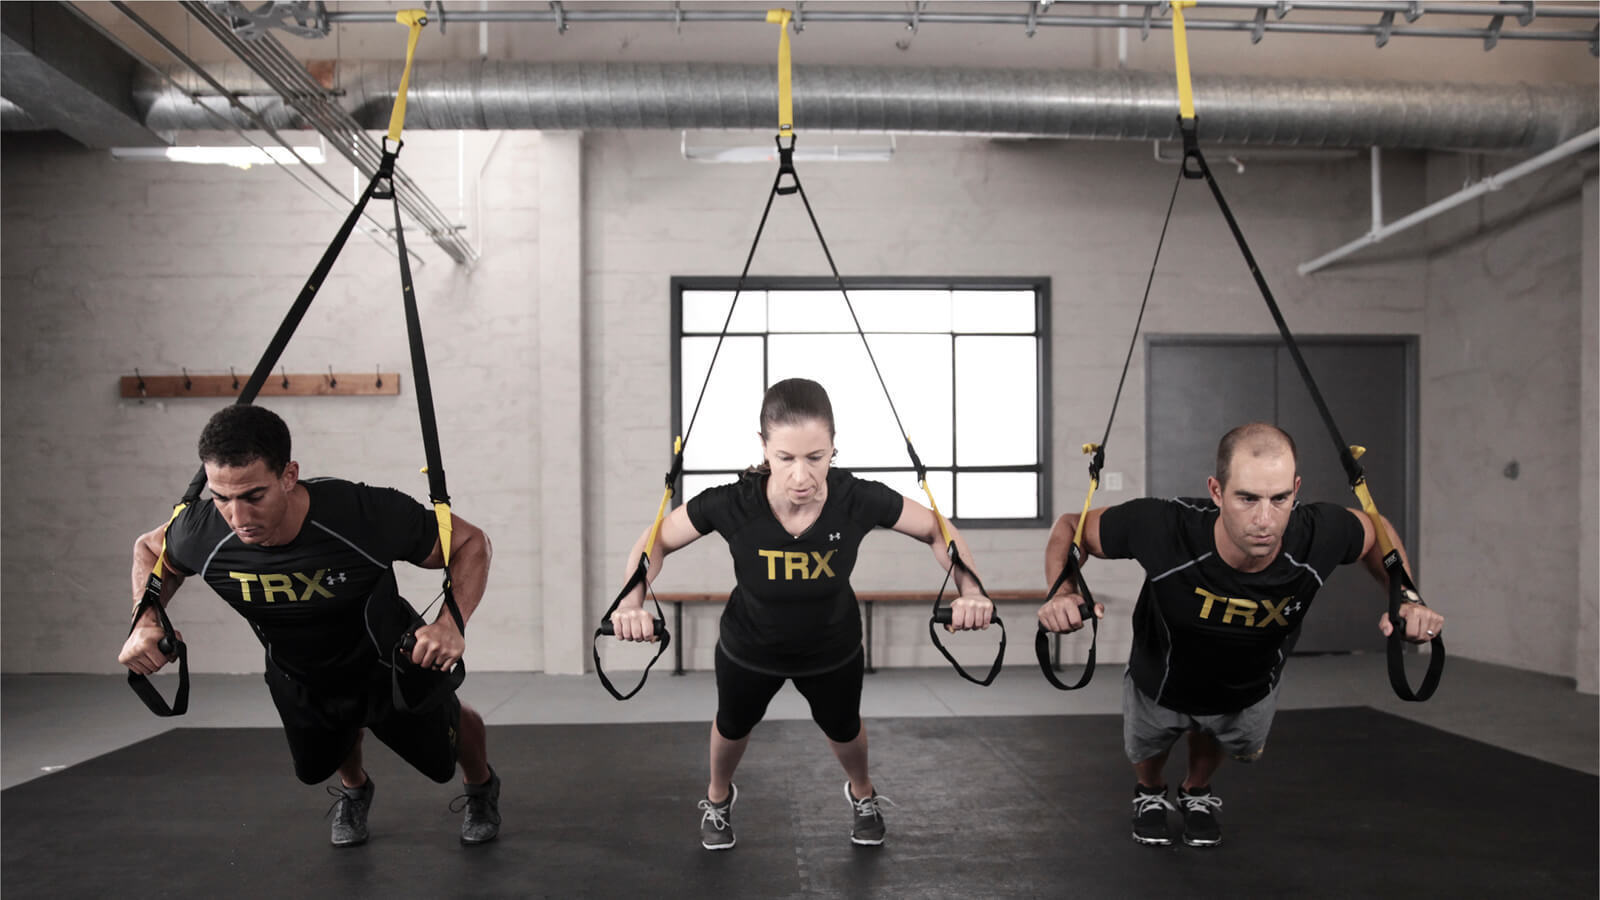 TRX: Functional training in sospensione